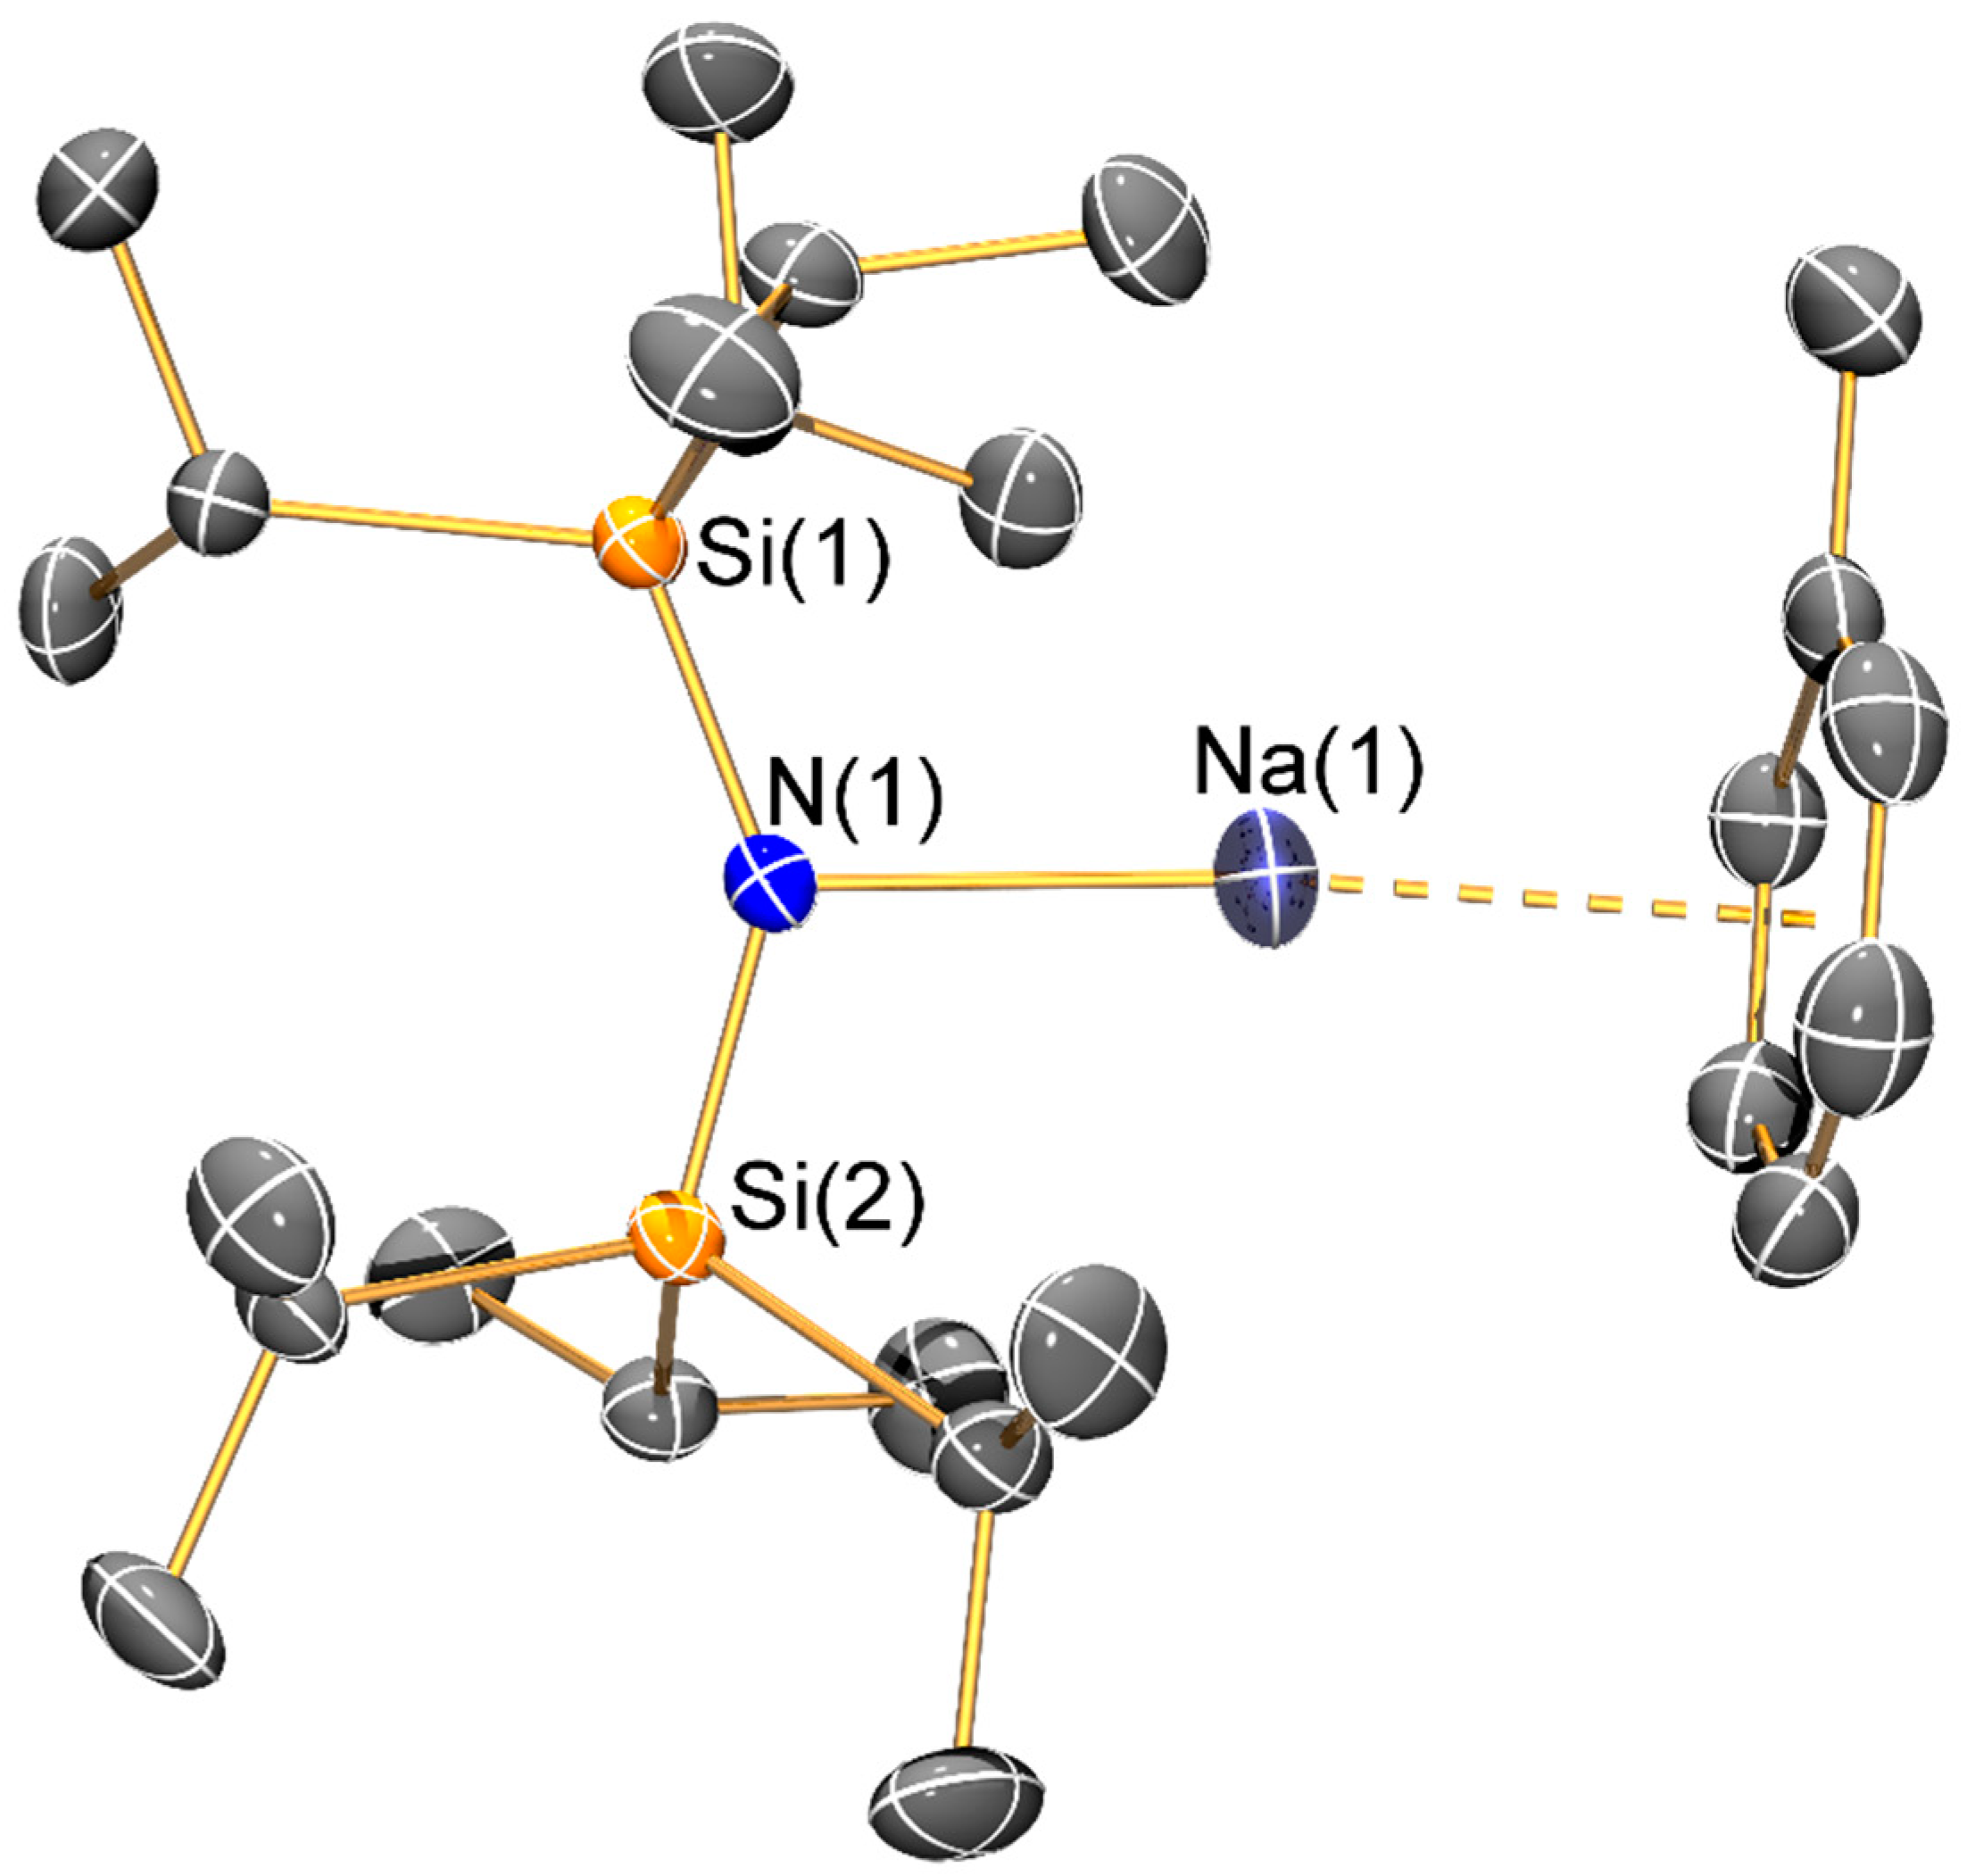 Molecules   Free Full-Text   Structural Characterization of Lithium and  Sodium Bulky Bis(silyl)amide Complexes   HTMLMDPI